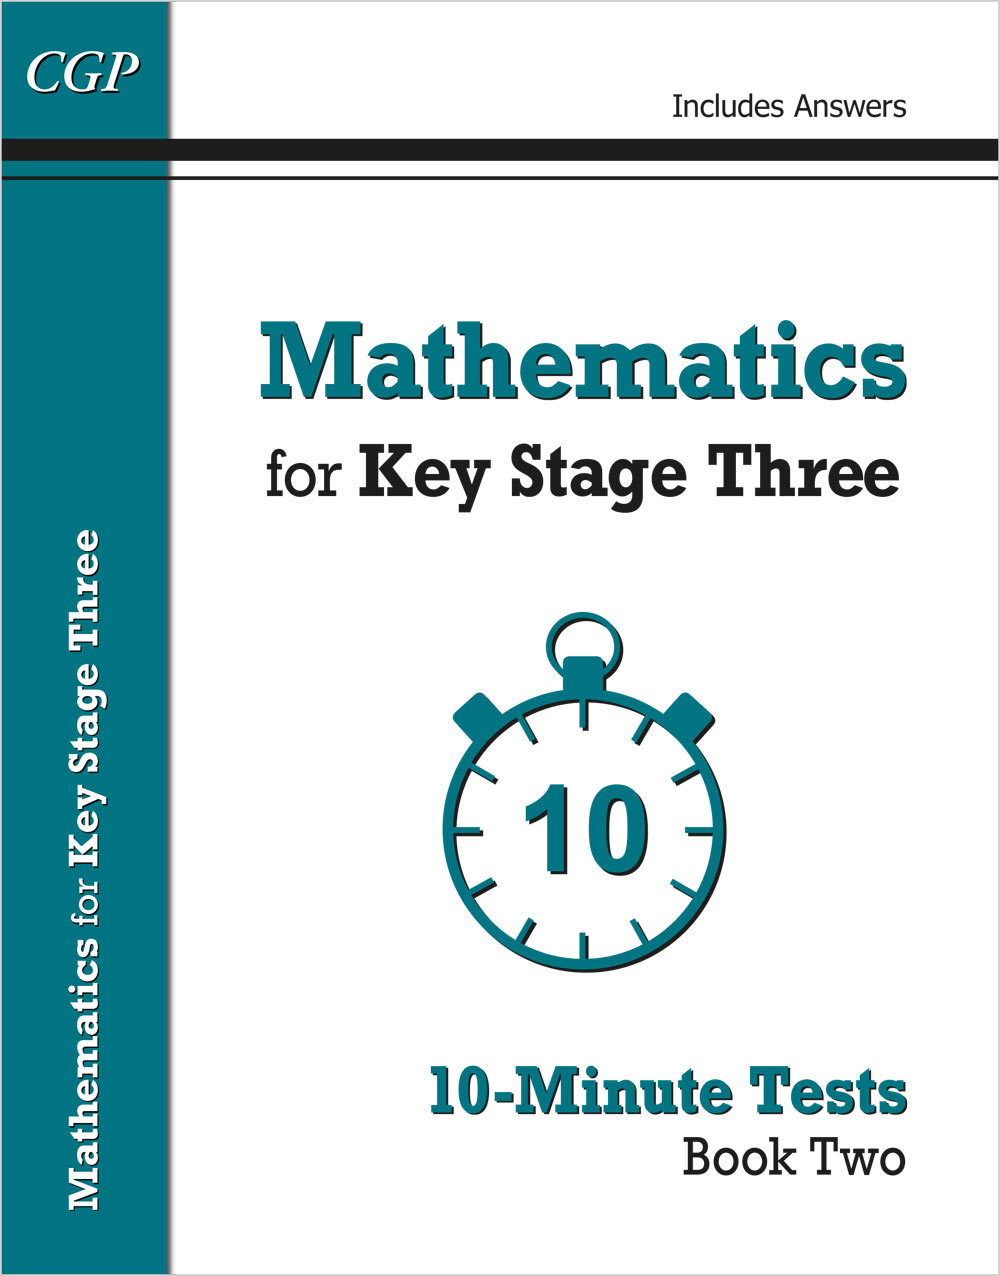 M2XP31 - Mathematics for KS3: 10-Minute Tests - Book 2 (including Answers)